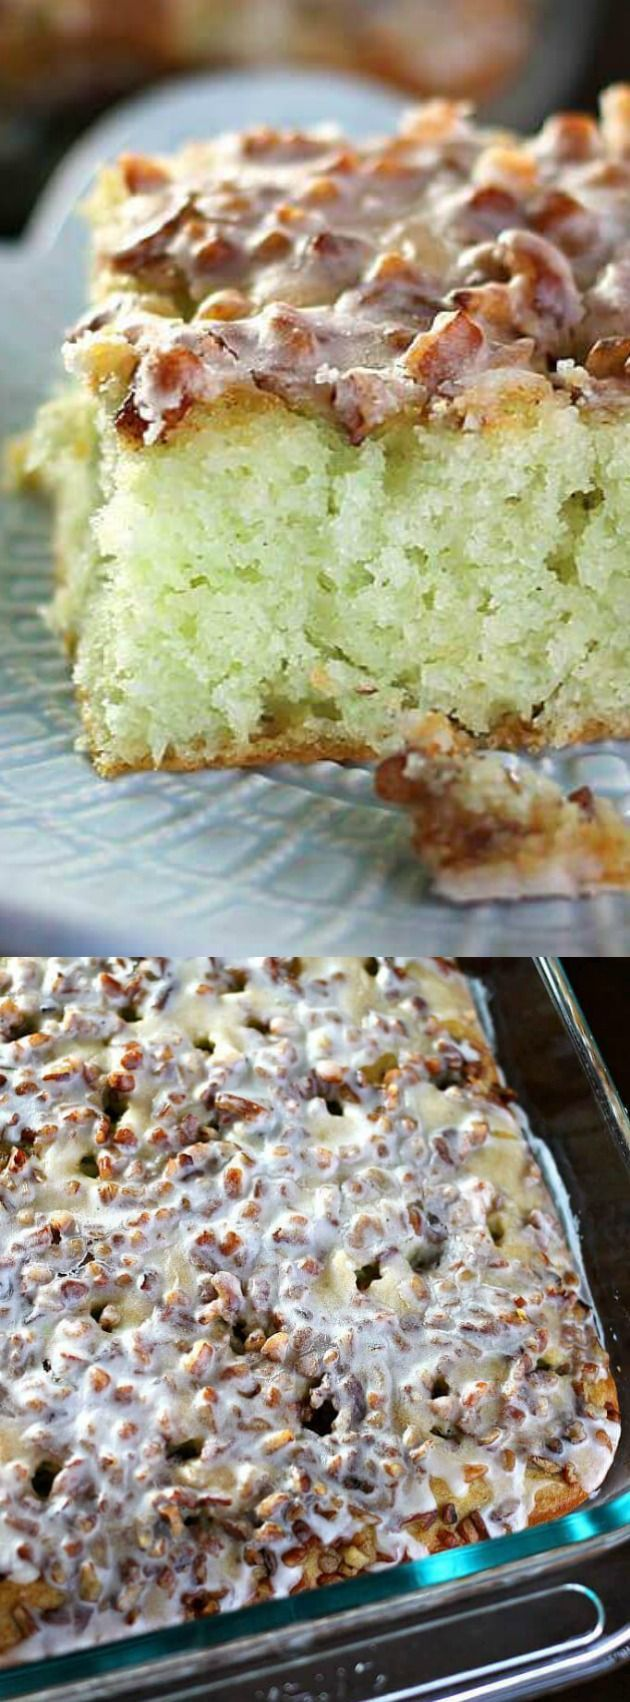 This Pistachio Poke Cake makes the perfect potluck cake! It's easy to make and everyone always loves it!